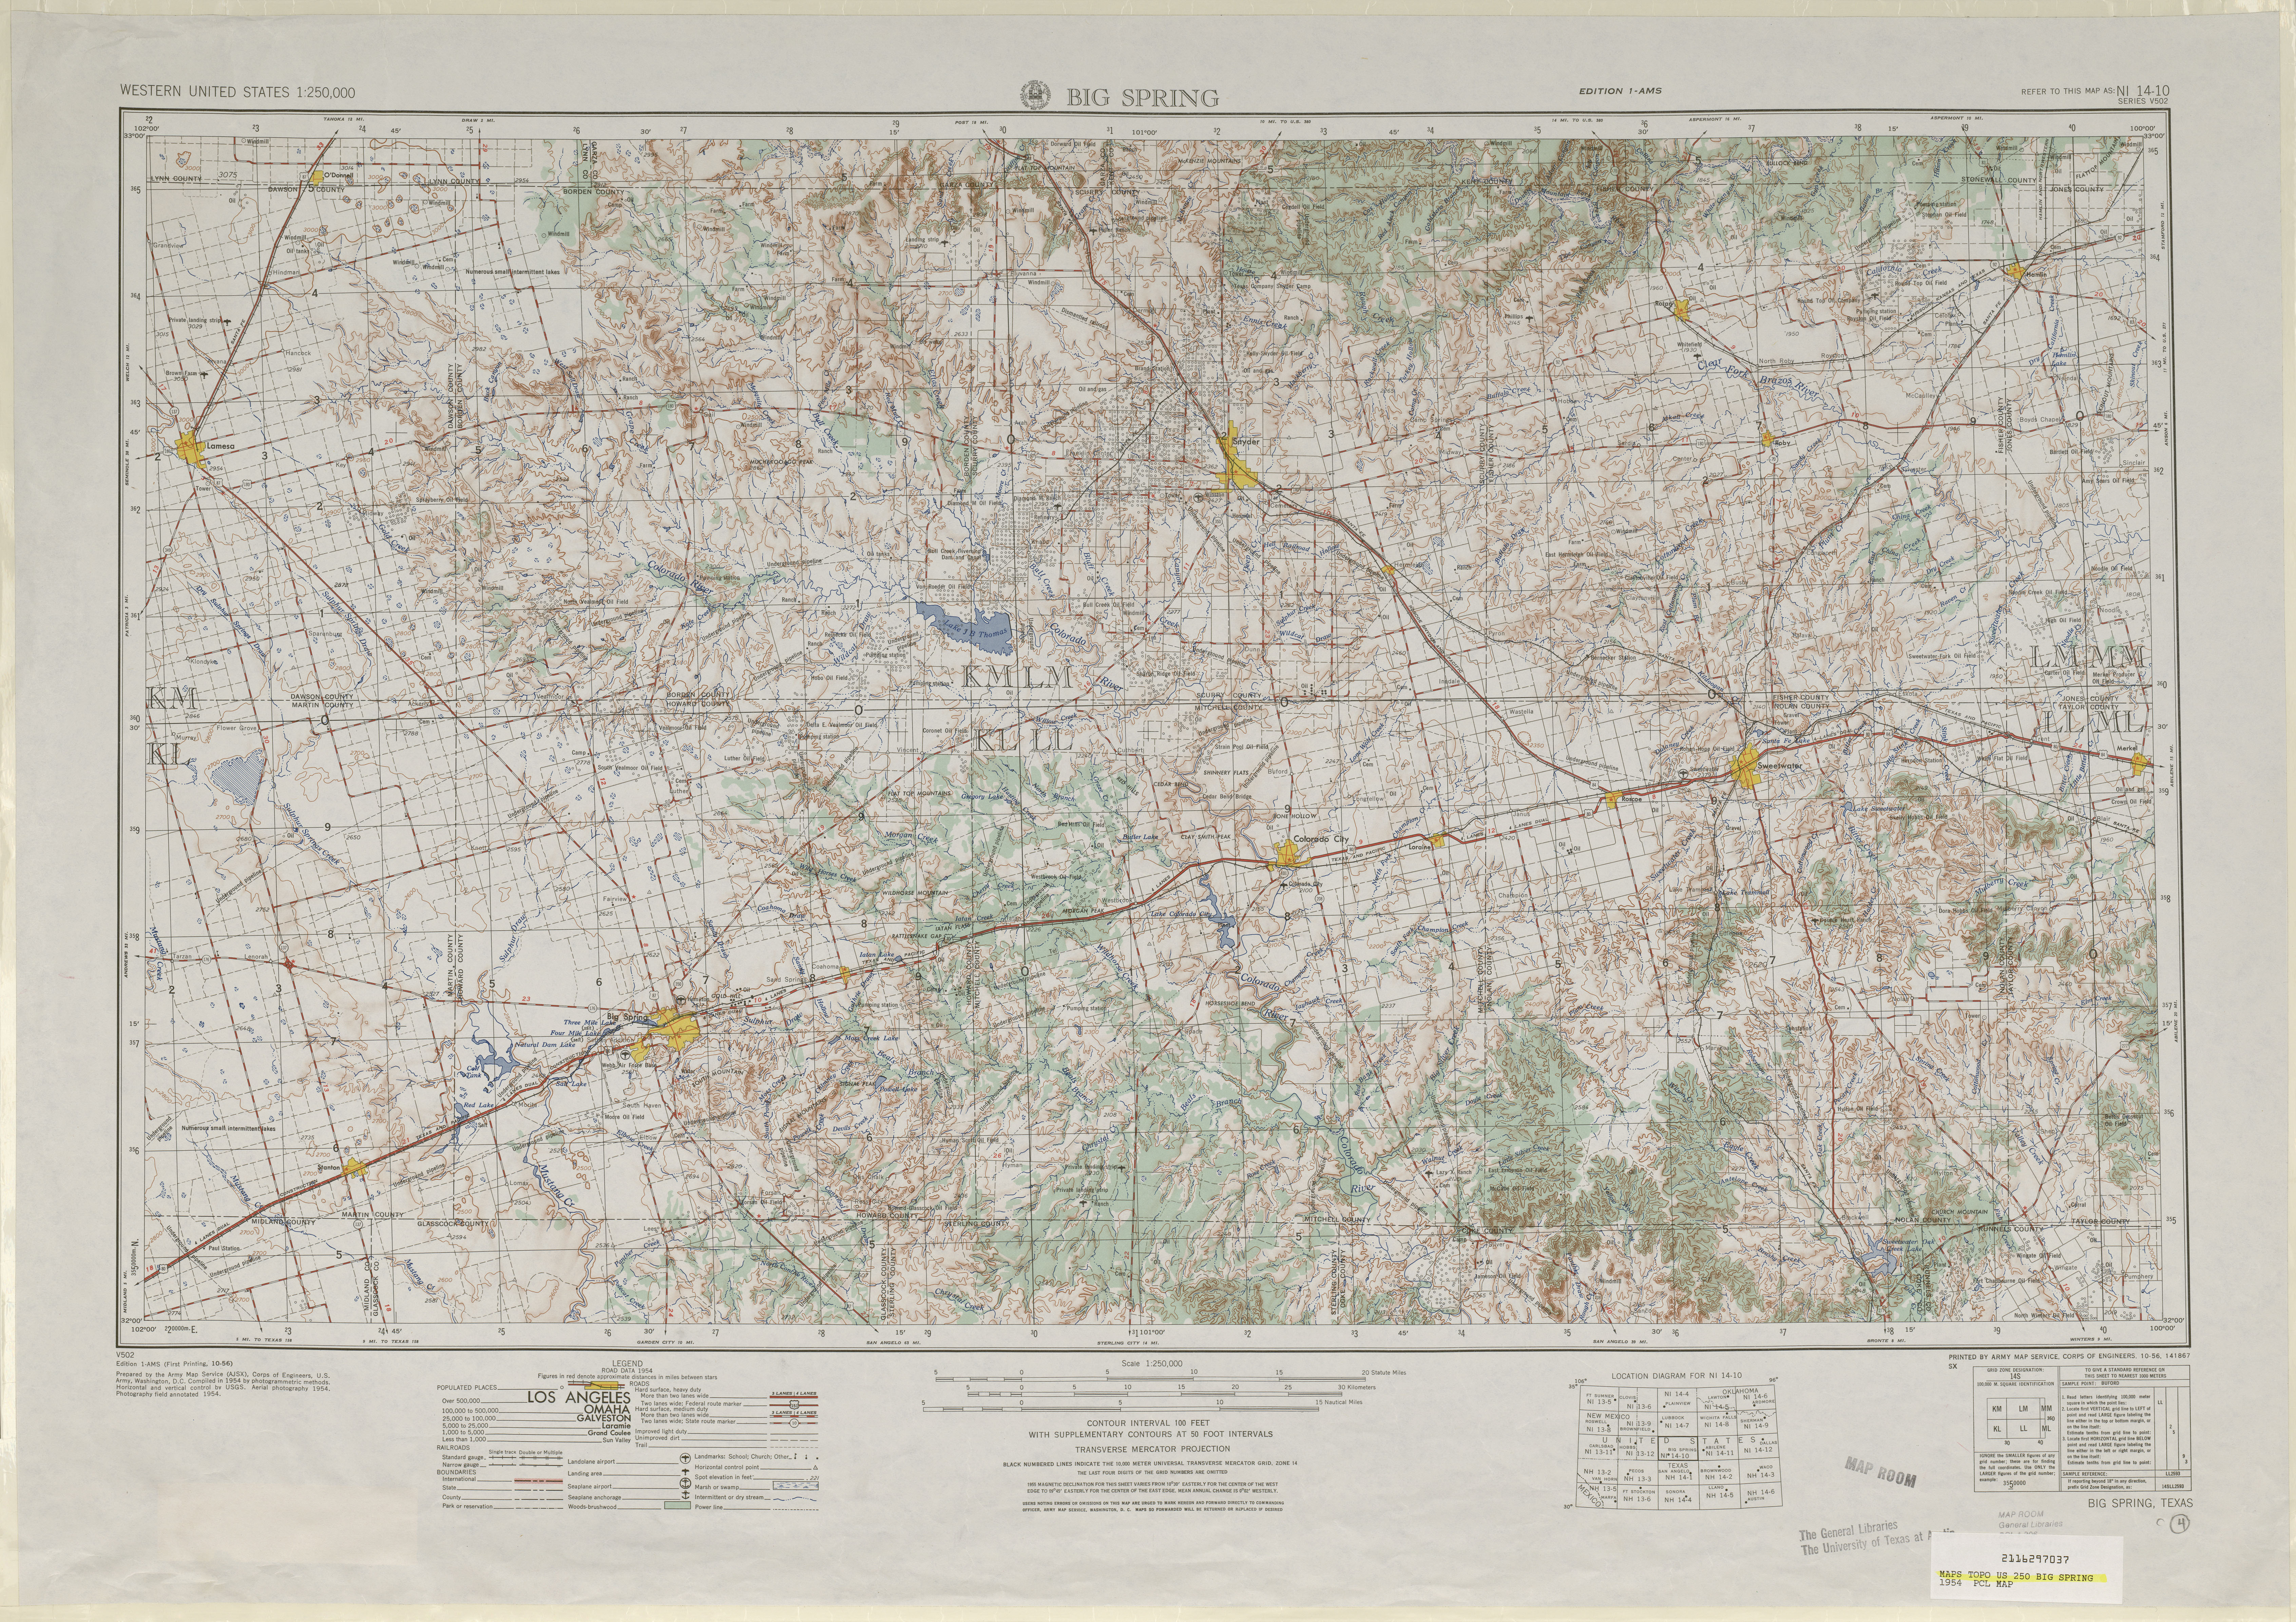 Big Spring Topographic Map Sheet, United States 1954